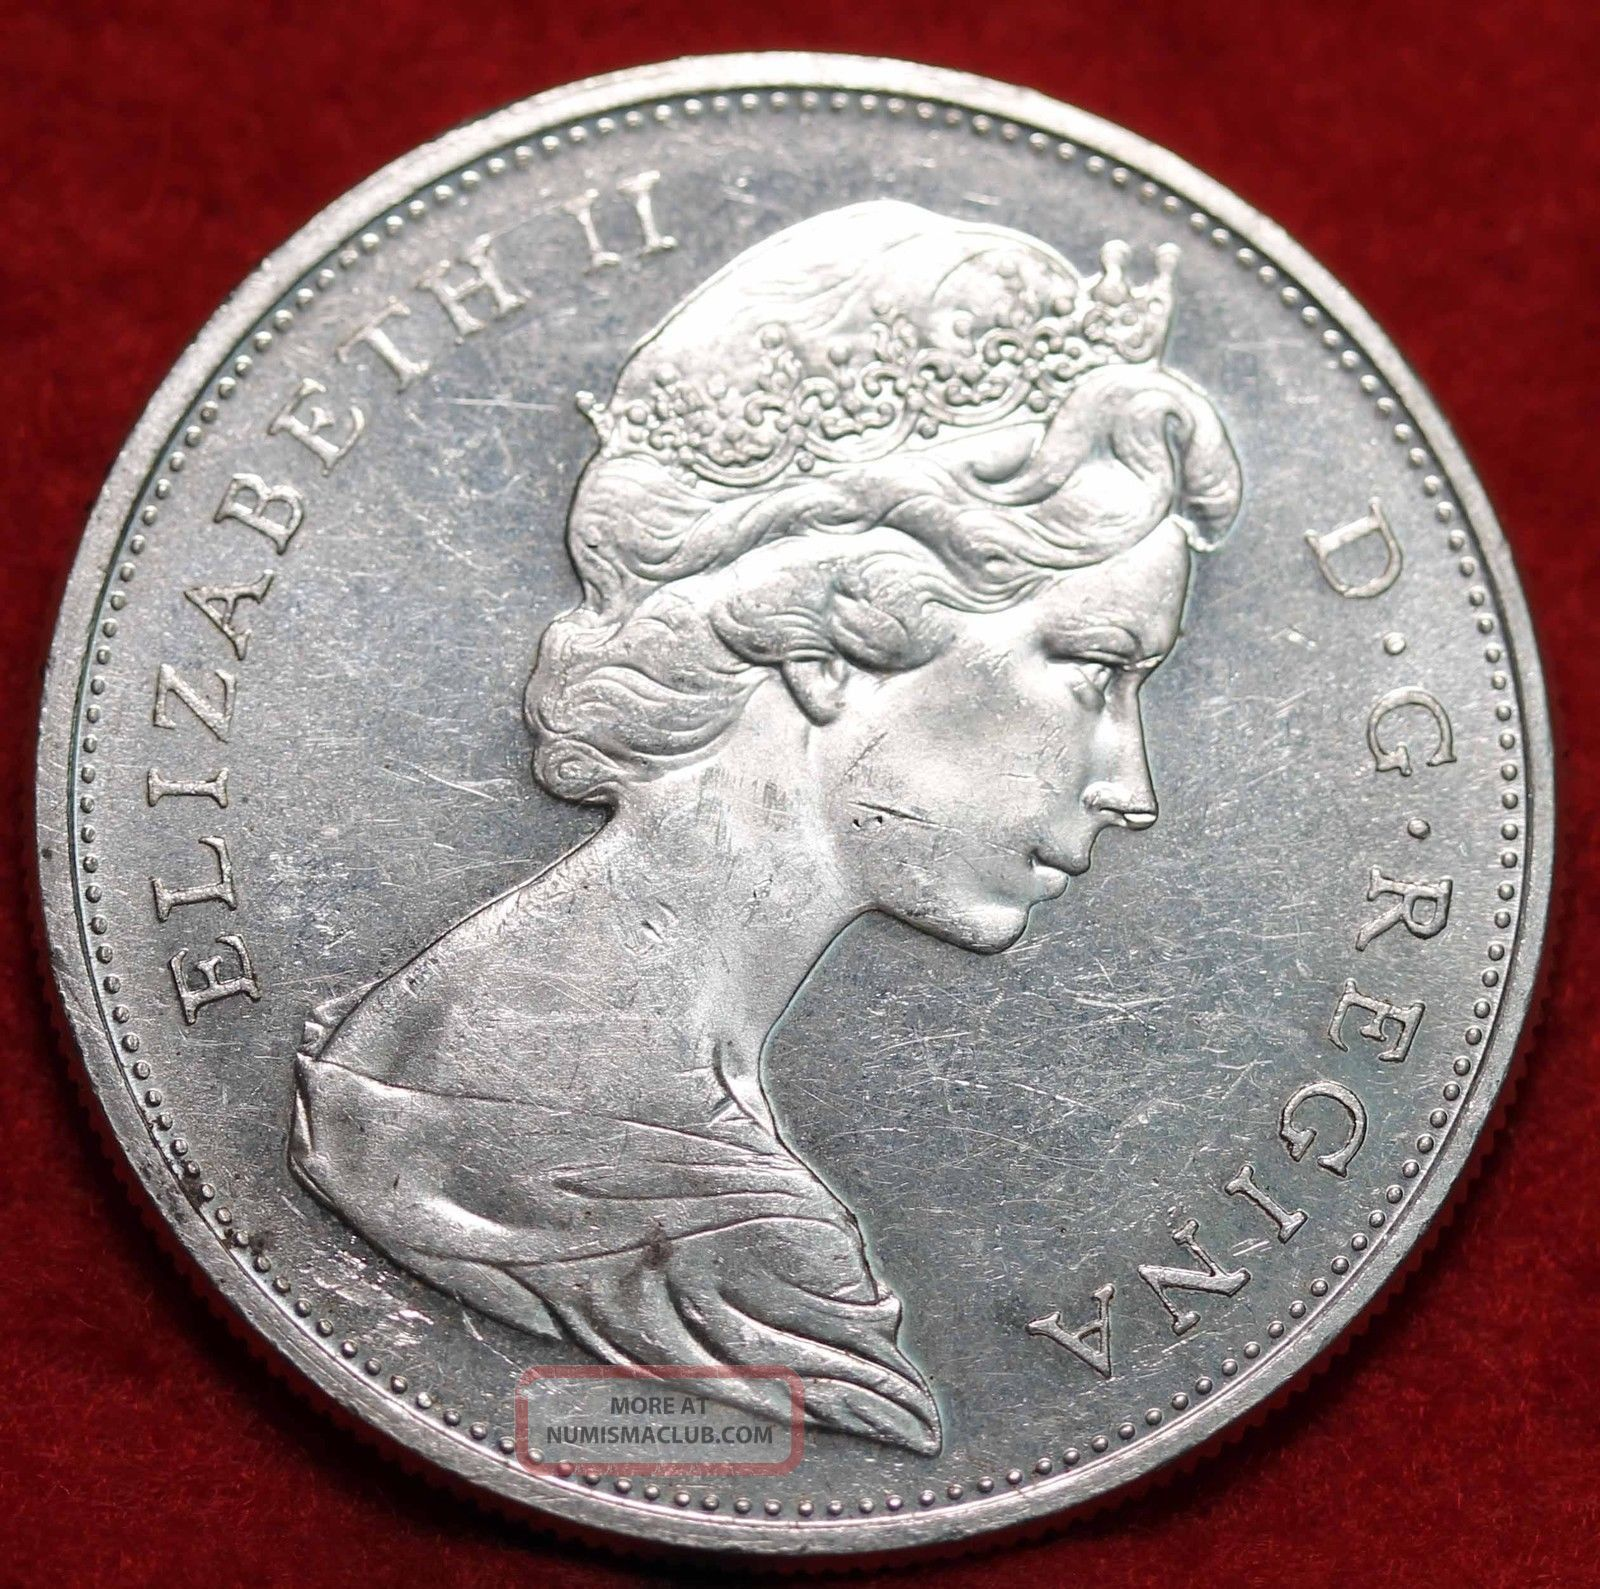 Uncirculated 1965 Canada Silver Dollar Foreign Coin S H